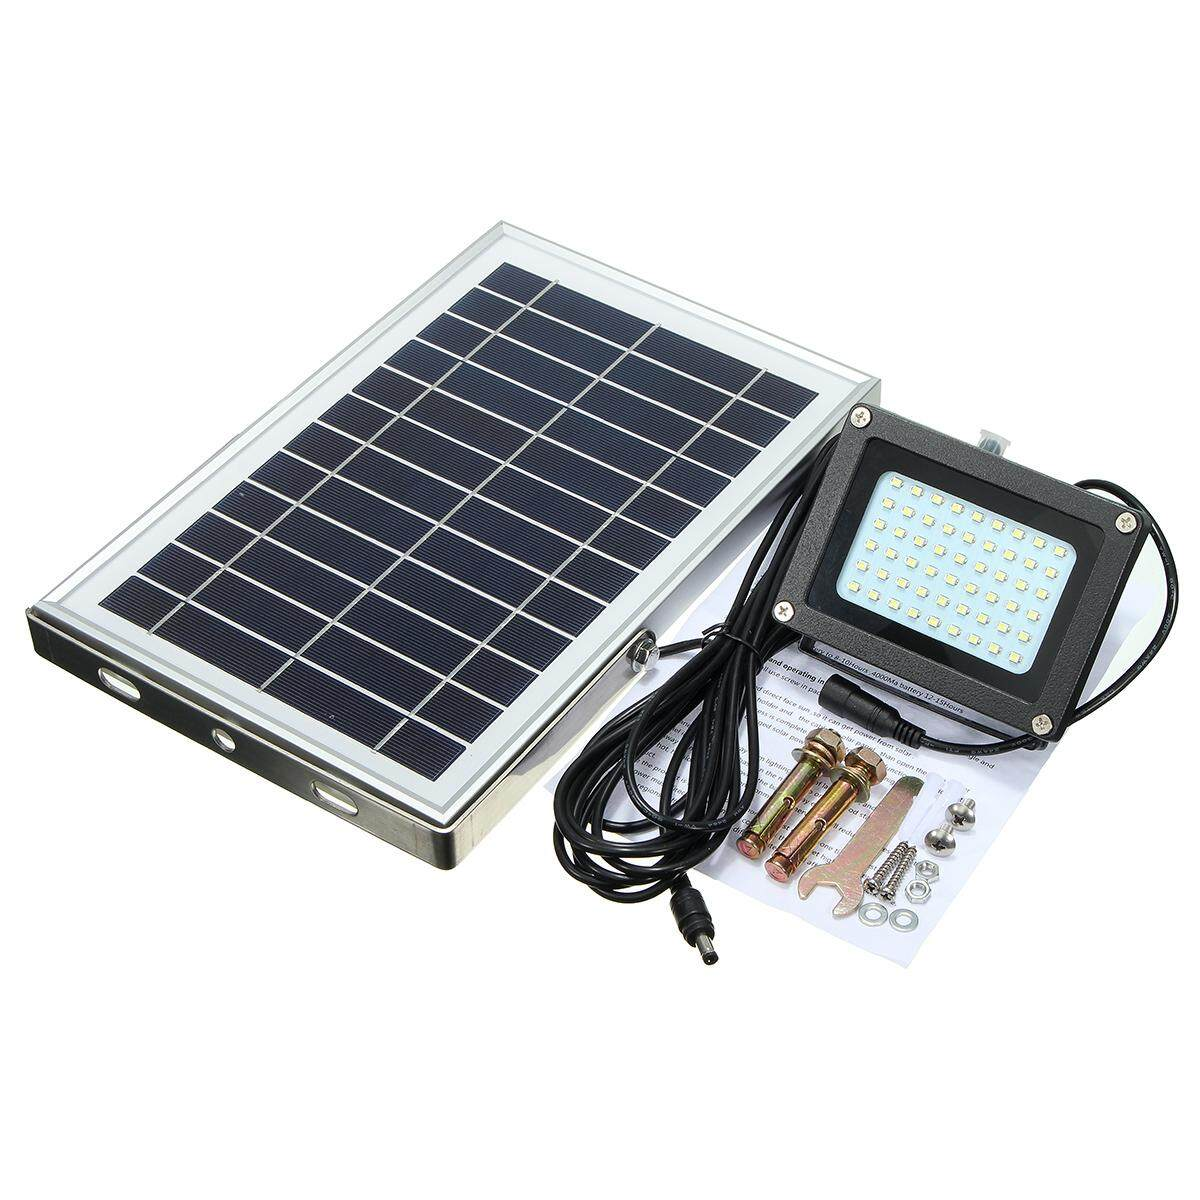 54 LED Solar Powered Waterproof Security Outdoor Flood Light Floodlight w/ Panel - Black - intl Philippines